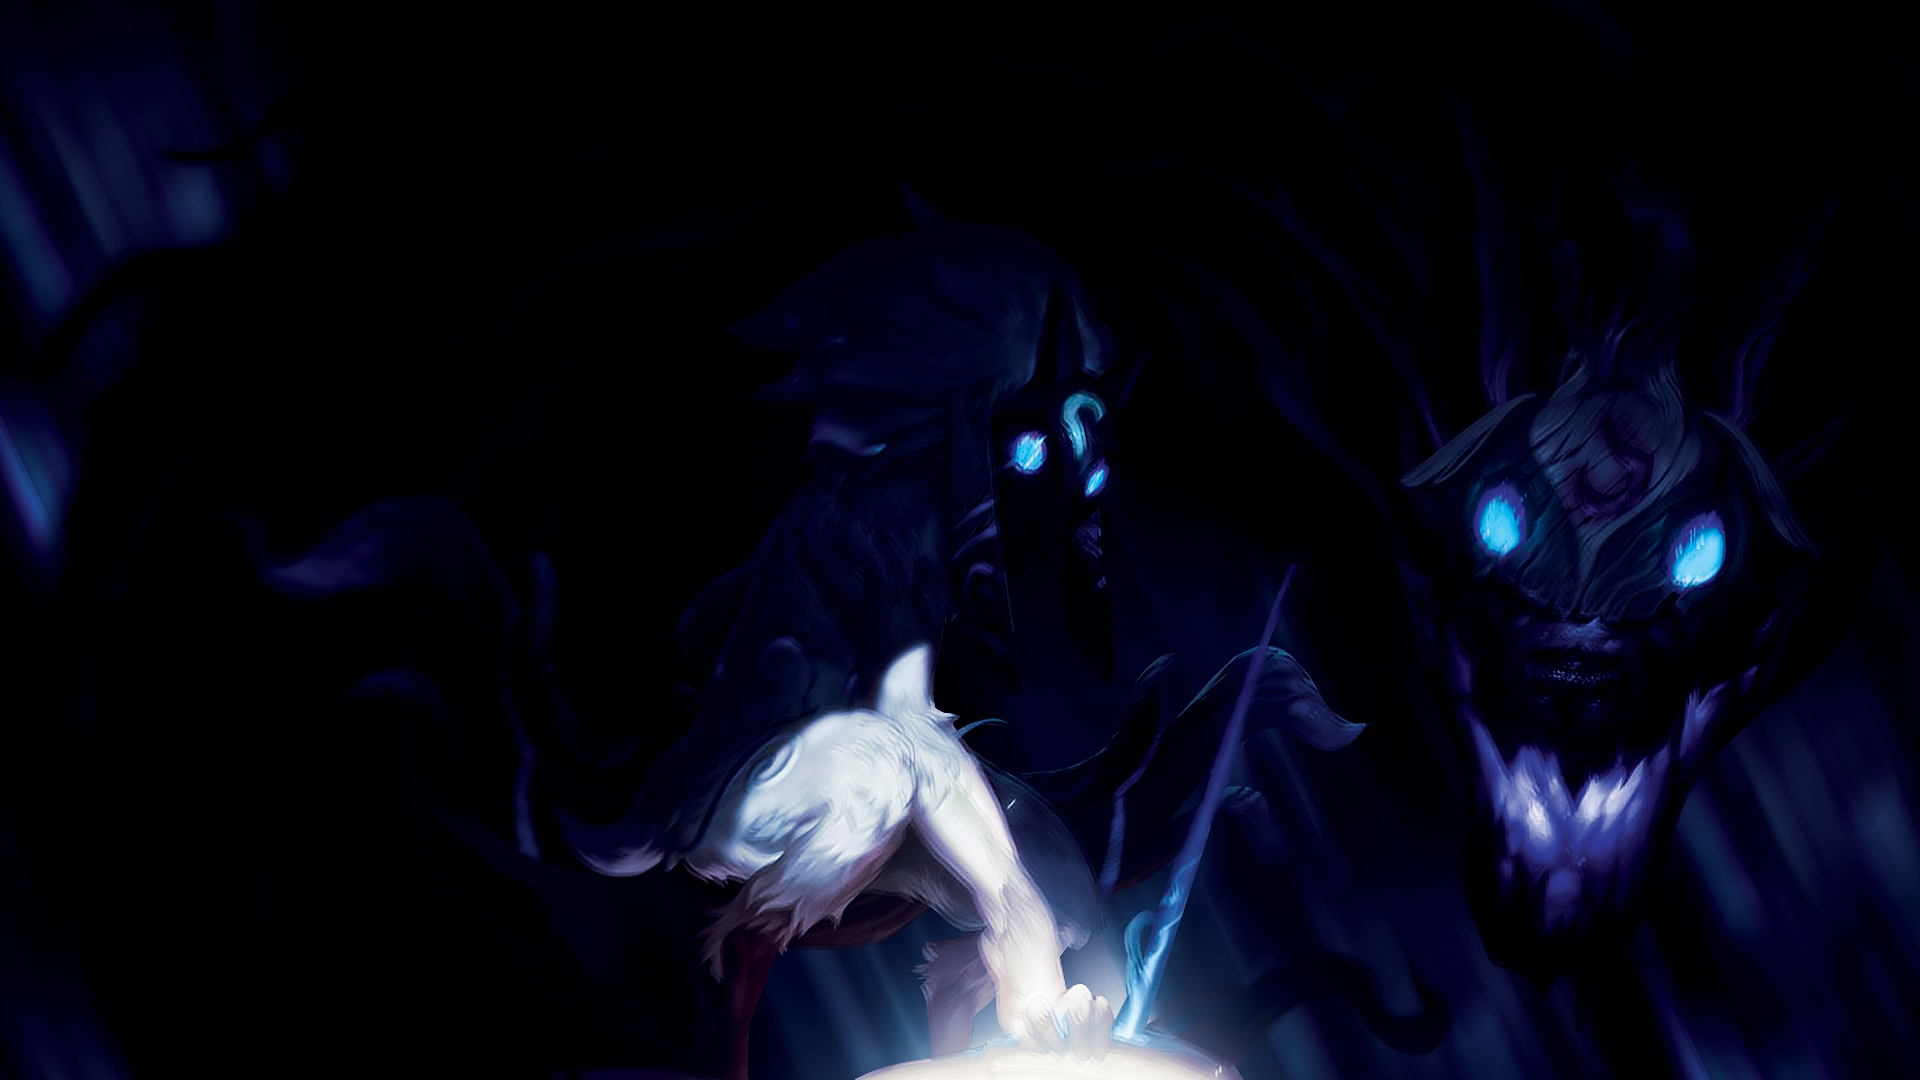 League Of Legends Kindred The Eternal Hunters By Nightfall1007